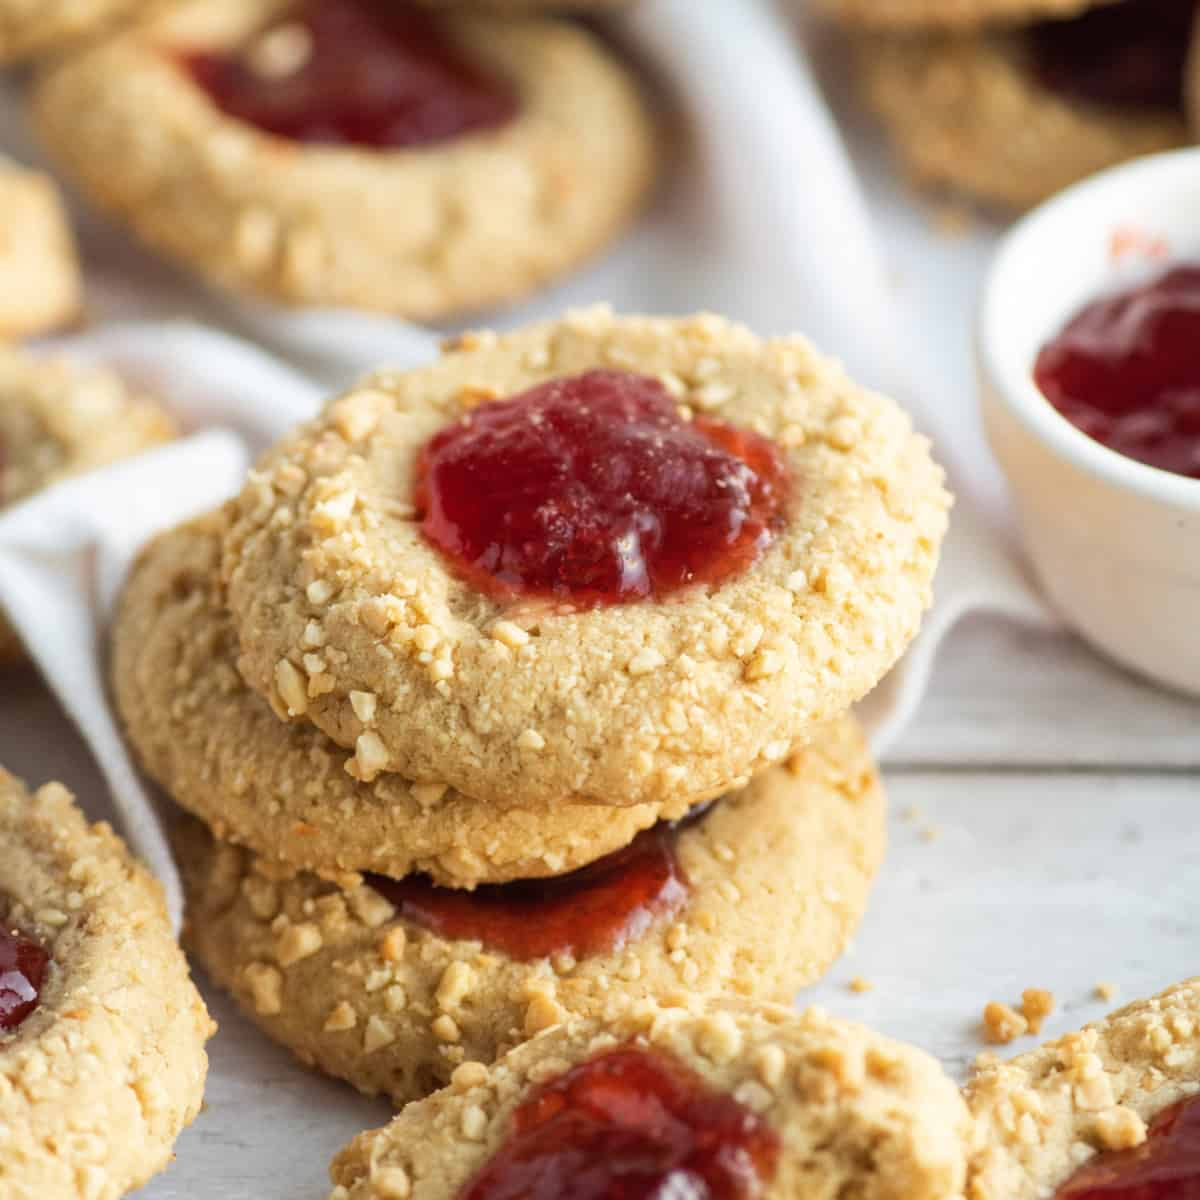 Short stack of peanut butter and jelly cookies.